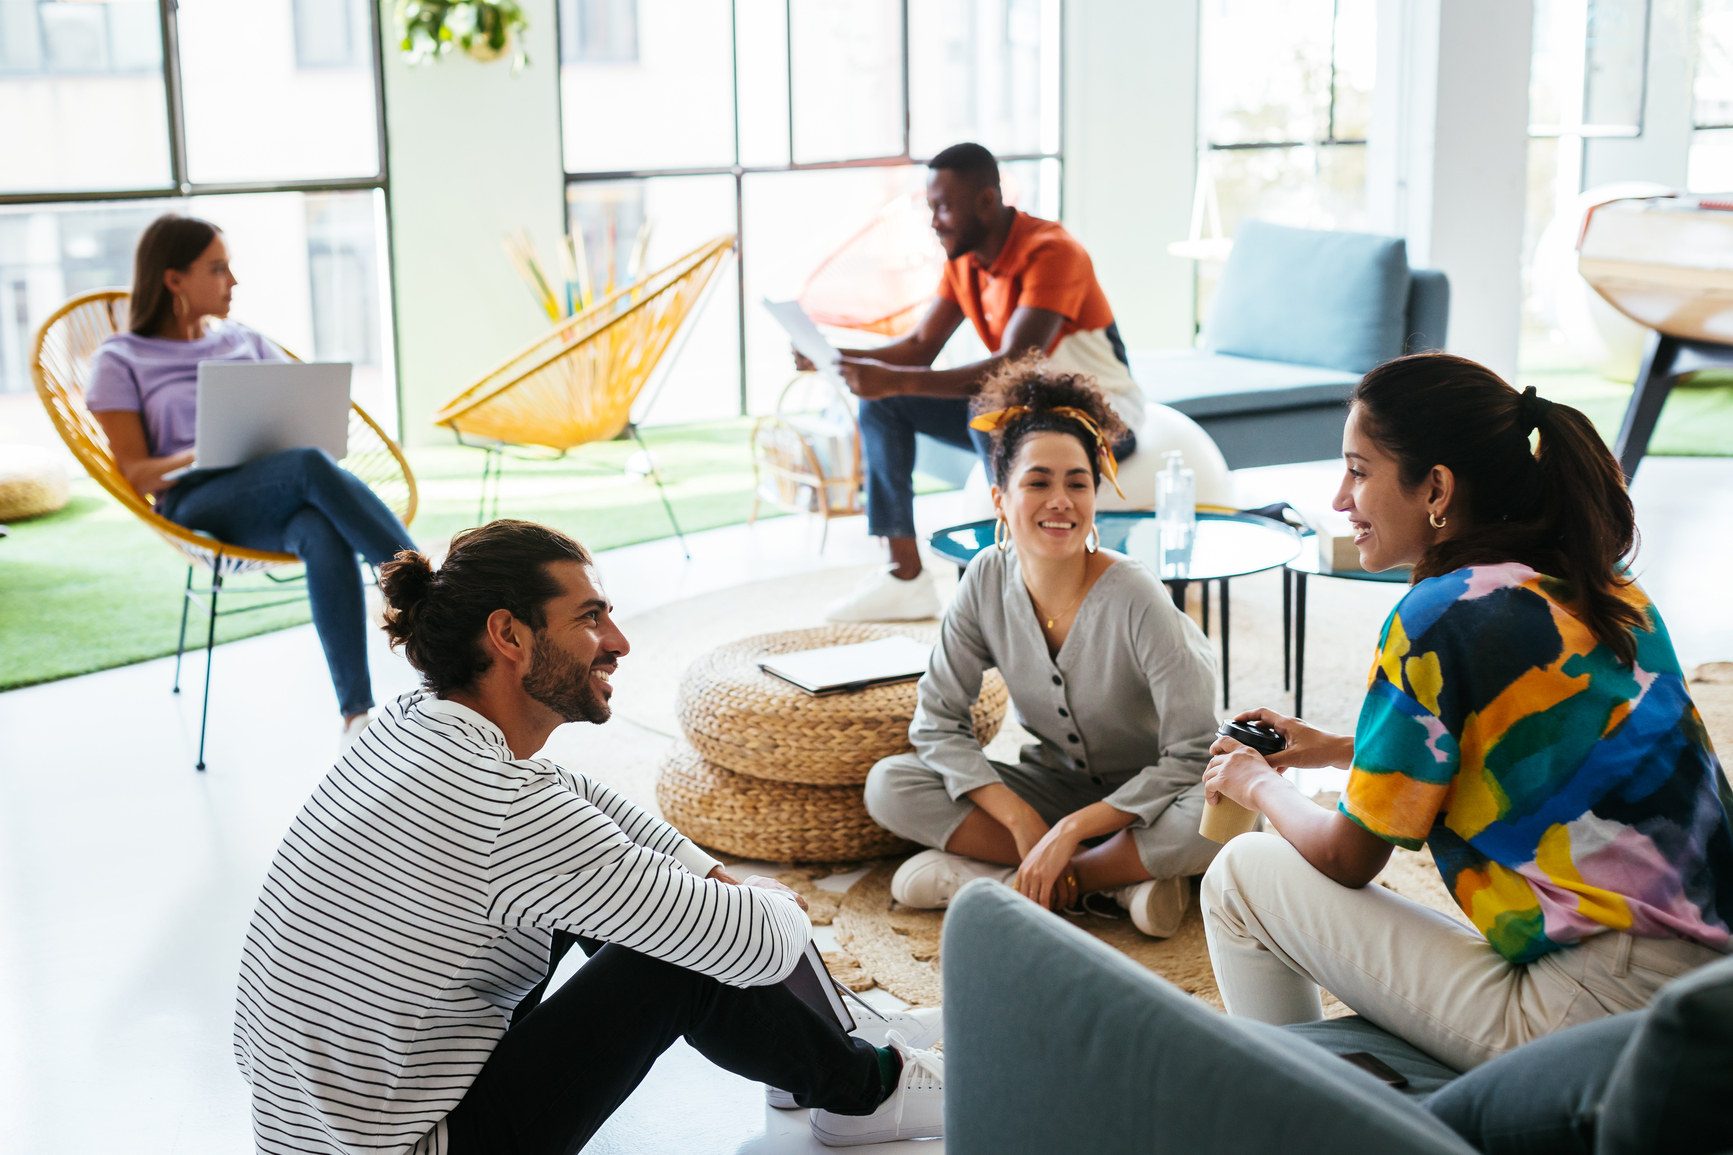 In a millennial workforce, family friendly benefits are the best way to attract top talent